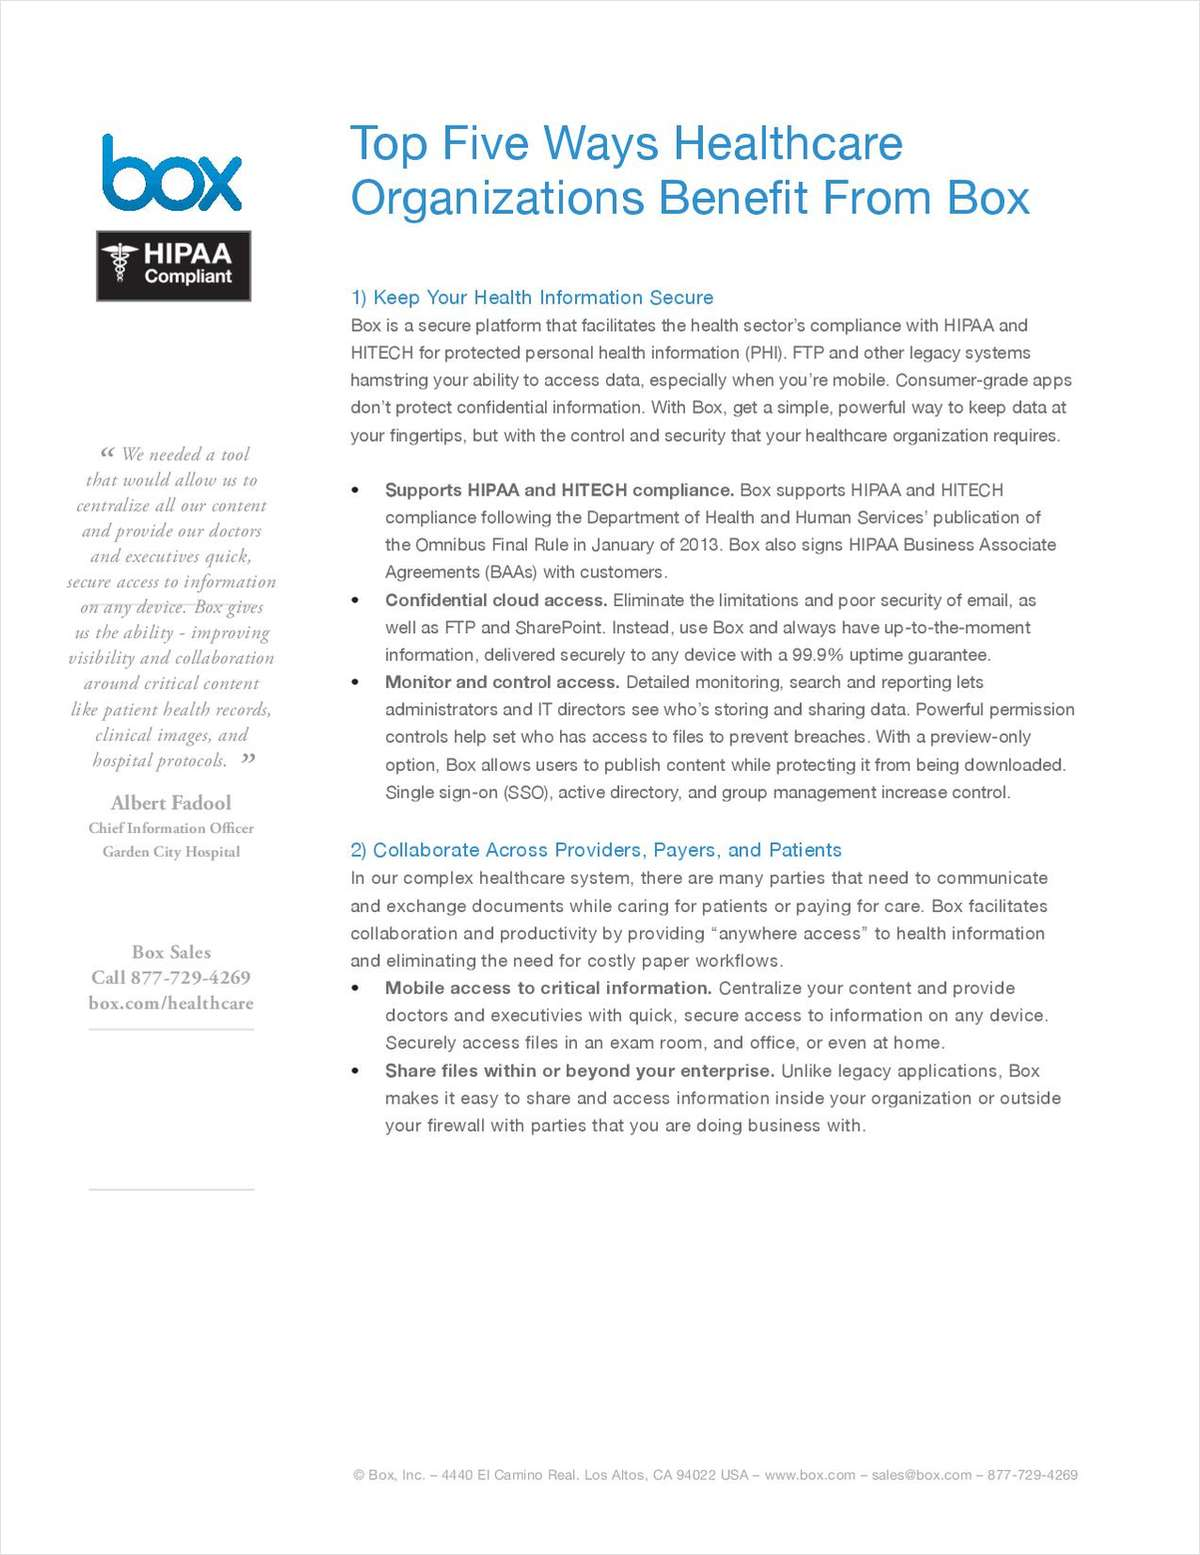 Top 5 Ways HCOs Benefit from Box